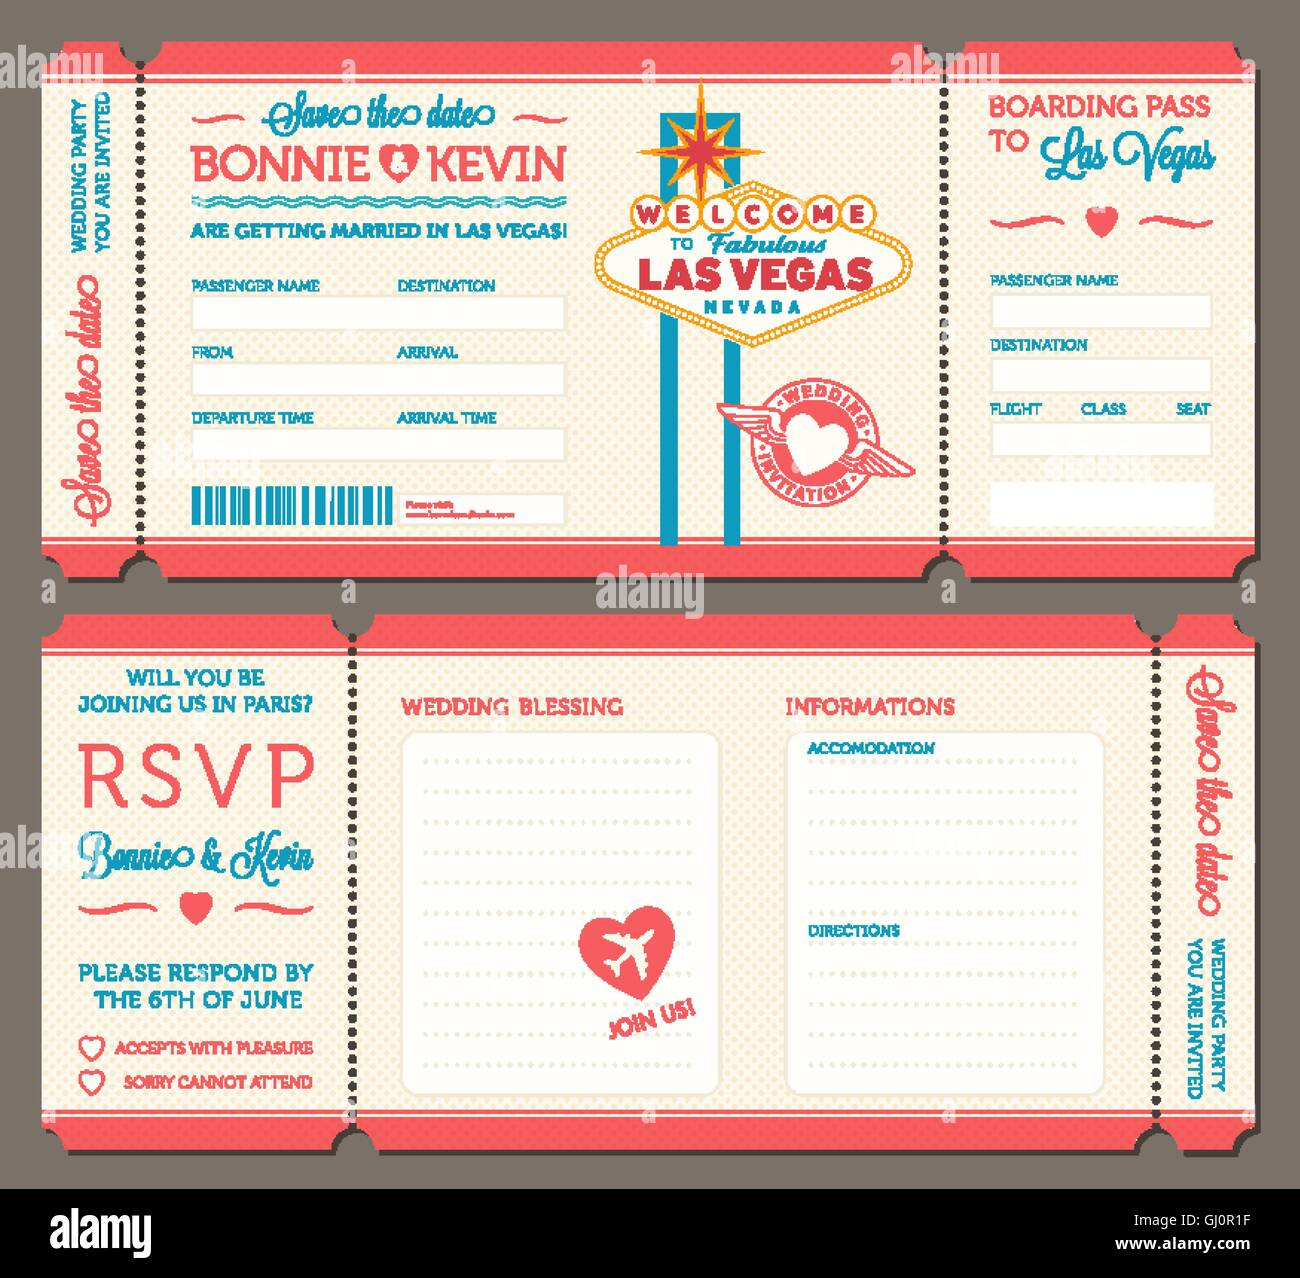 Wedding Vector Vectors Stock Photos & Wedding Vector Vectors Stock ...